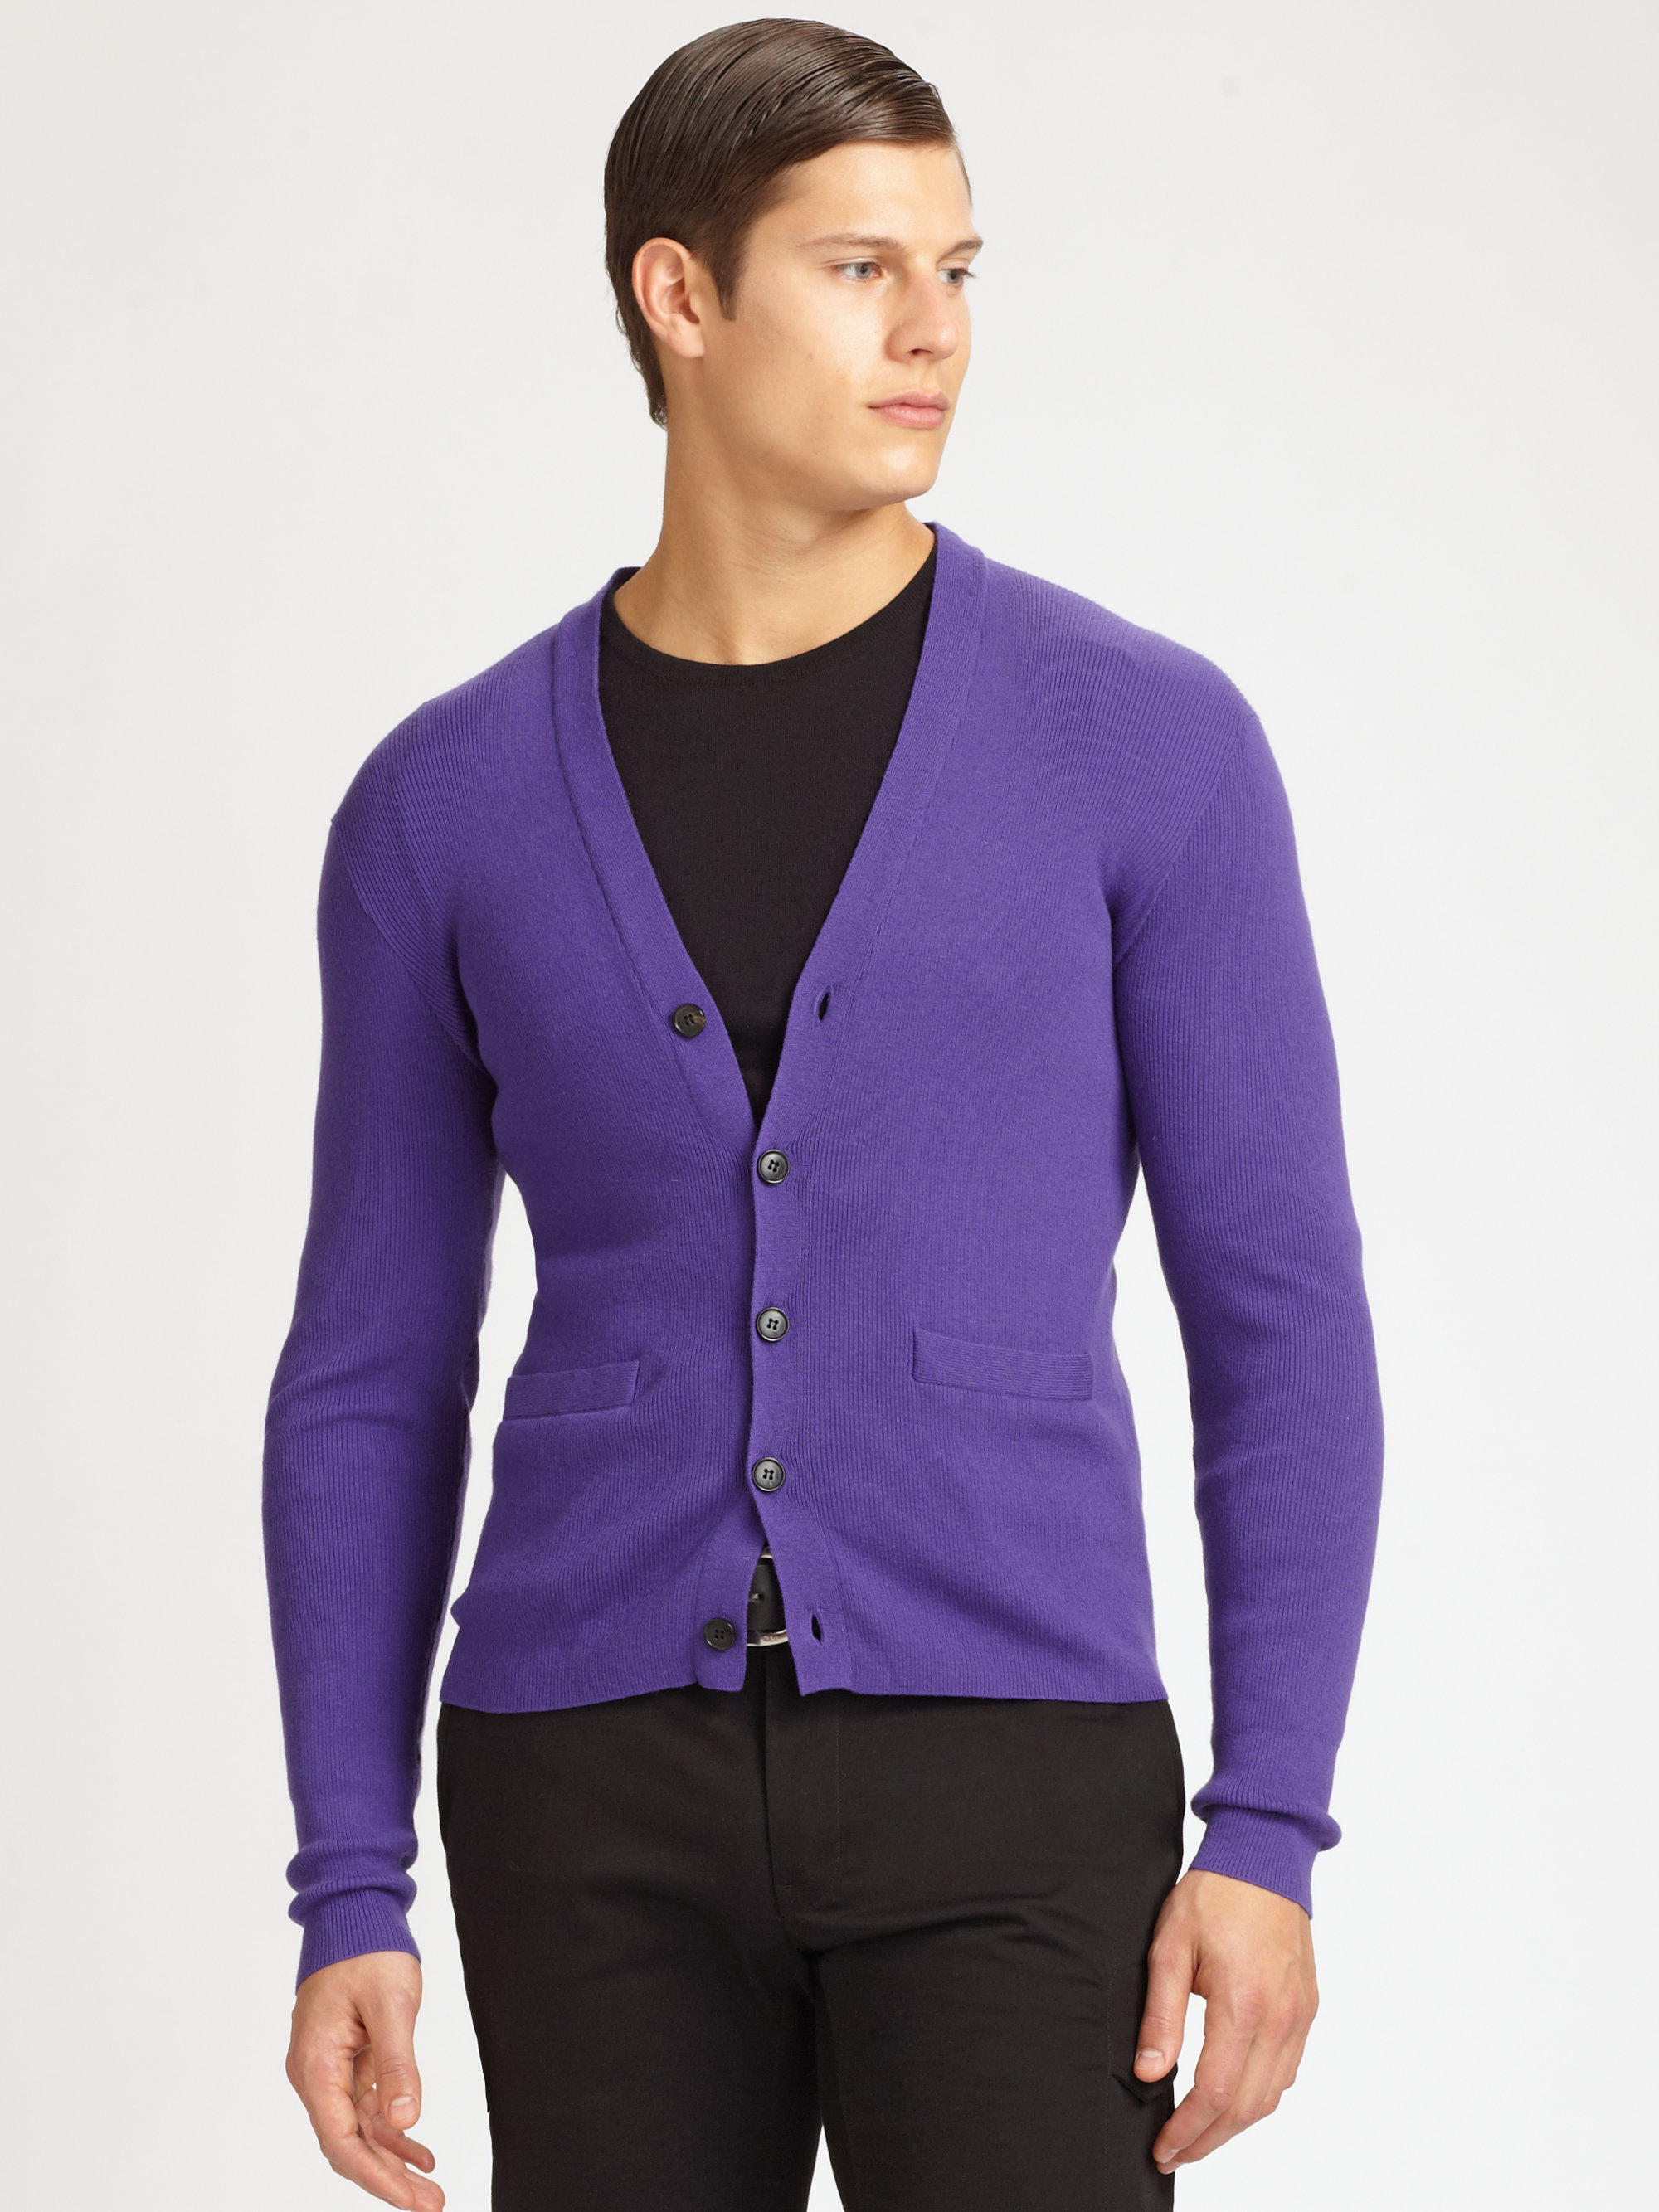 Shop sweaters for men online at dolcehouse.ml, find latest styles of cheap cool elbow patch sweaters, turtleneck sweater and more mens knitwear at discount price.